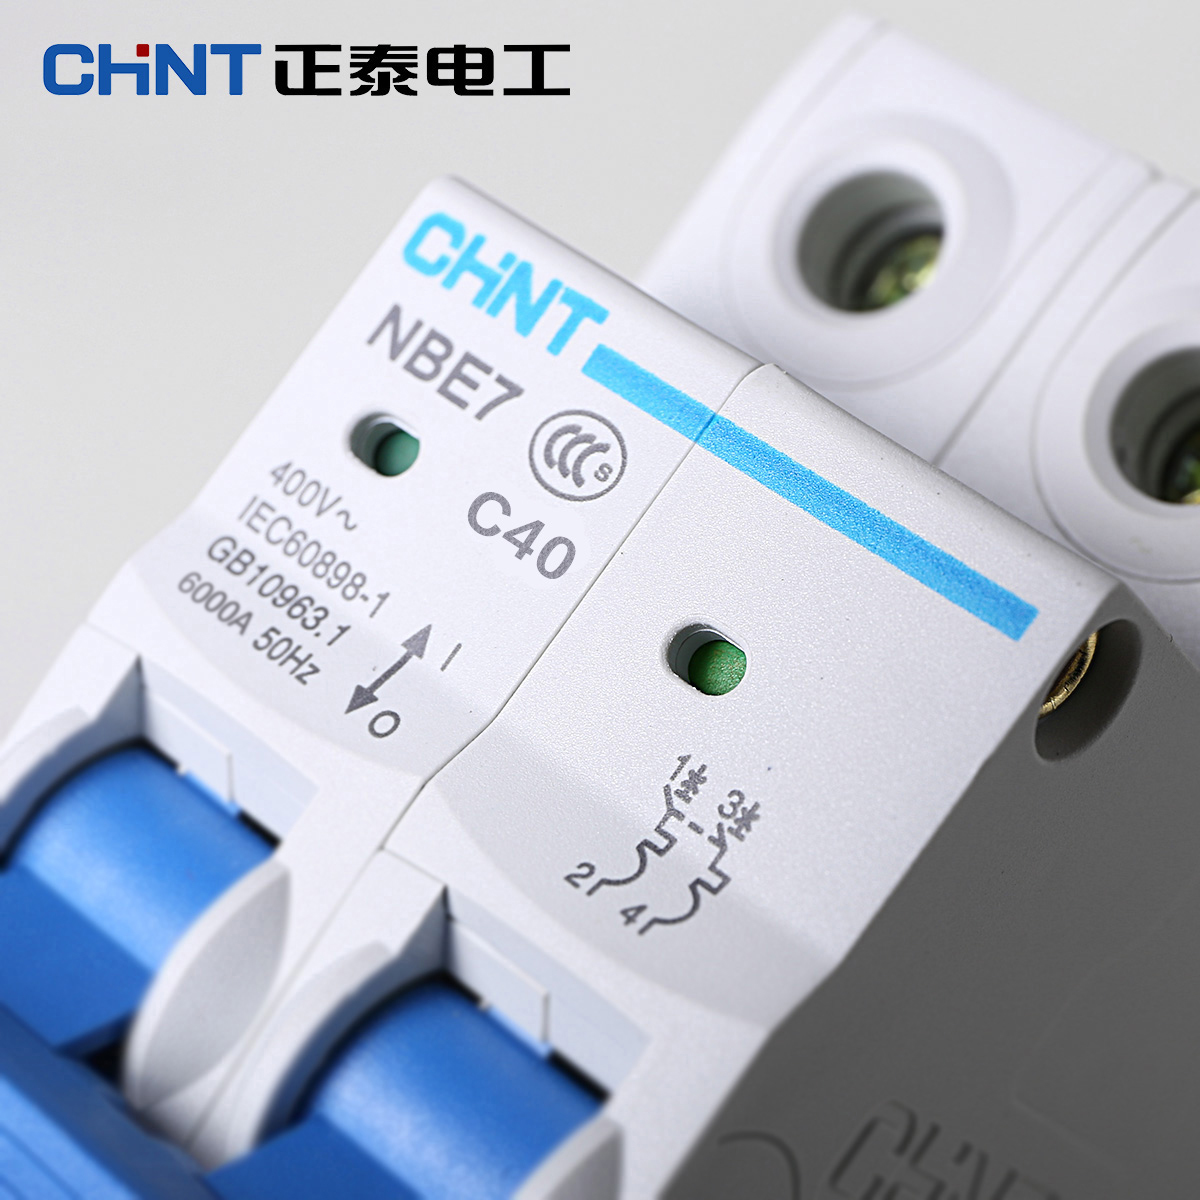 CHINT Small Circuit Breakers Household Circuit Breakers NBE7 2P 40A C40 Circuit Breakers in Circuit Breakers from Home Improvement